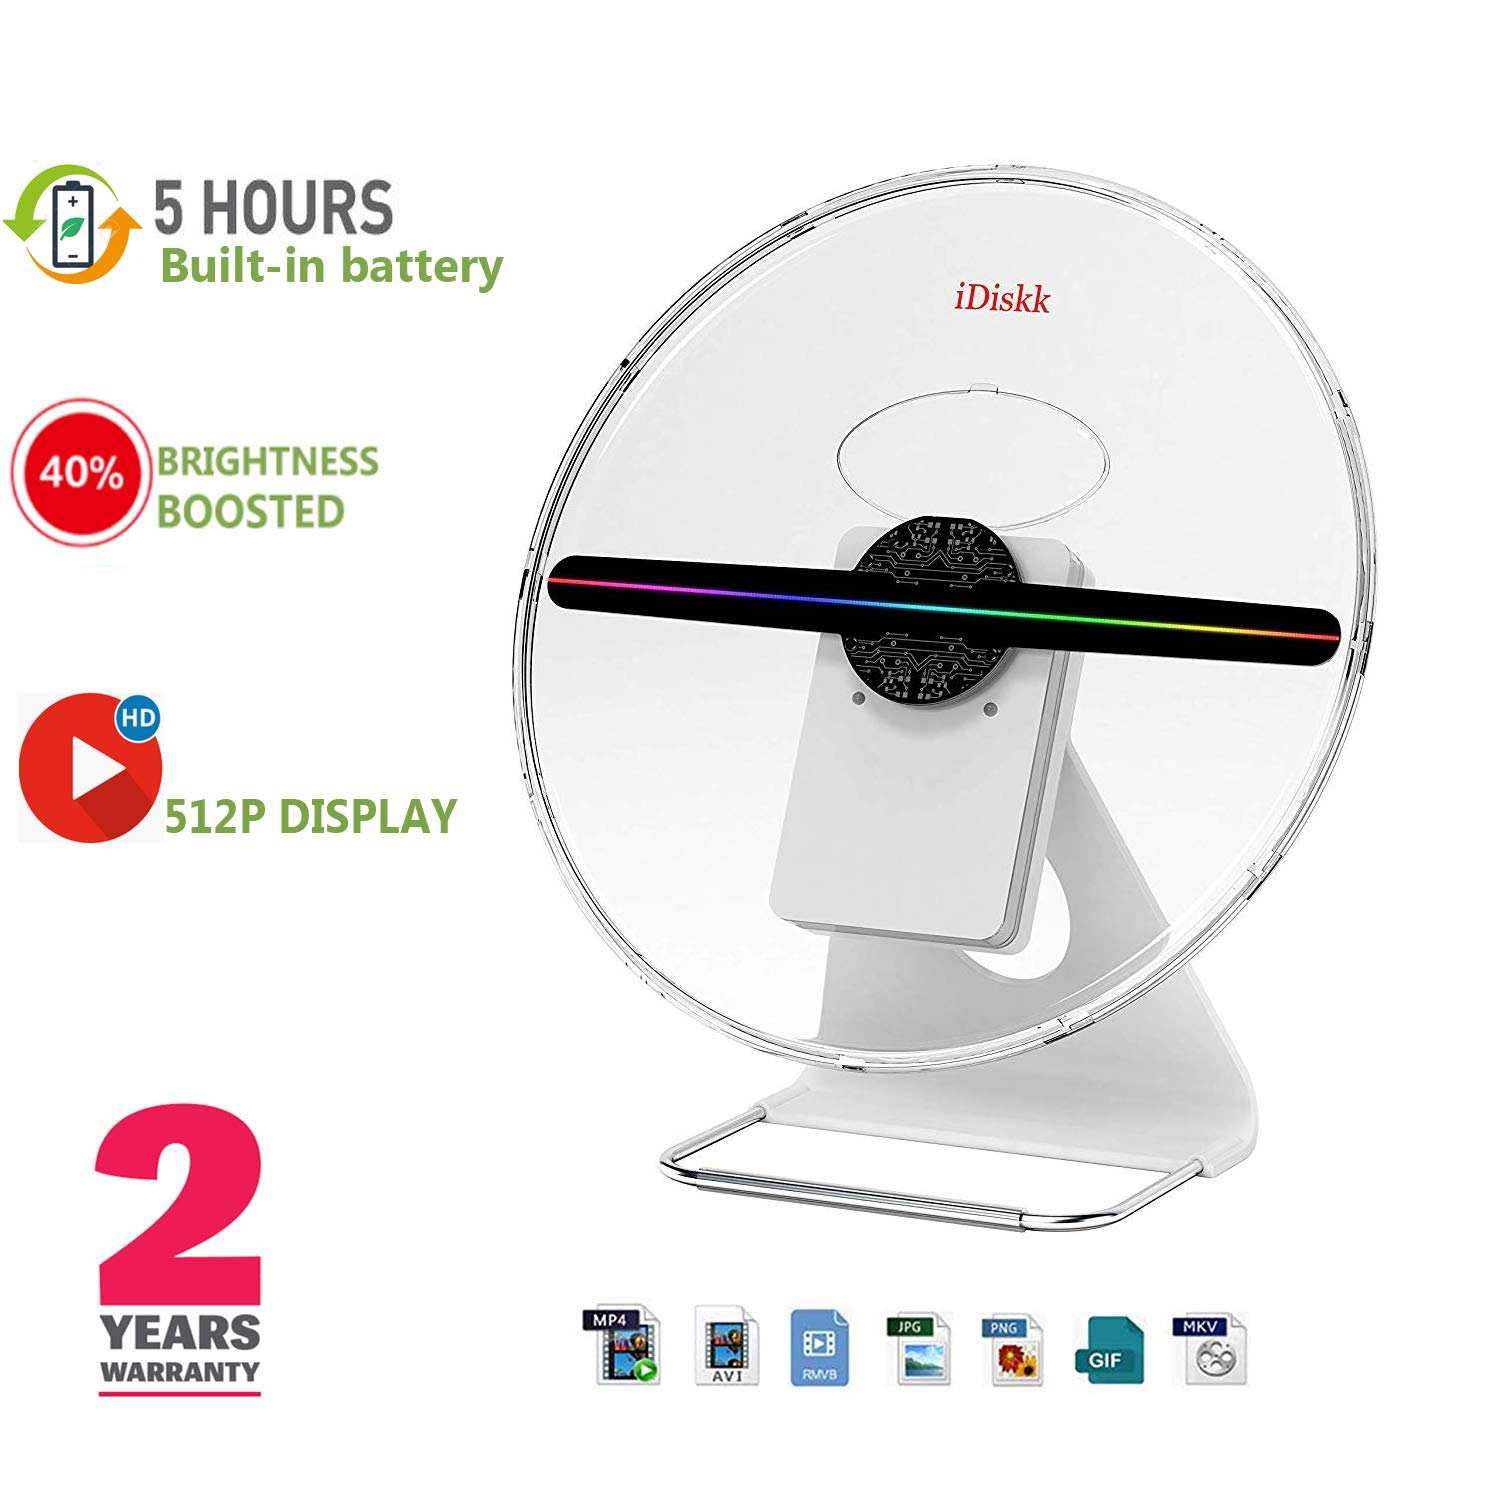 IDISKK Original 3D Hologram Fan 30CM Portable Holographic Display Projector Photo and 512P HD Video Advertising Projector Fan for Shops Office Business Home by iDiskk